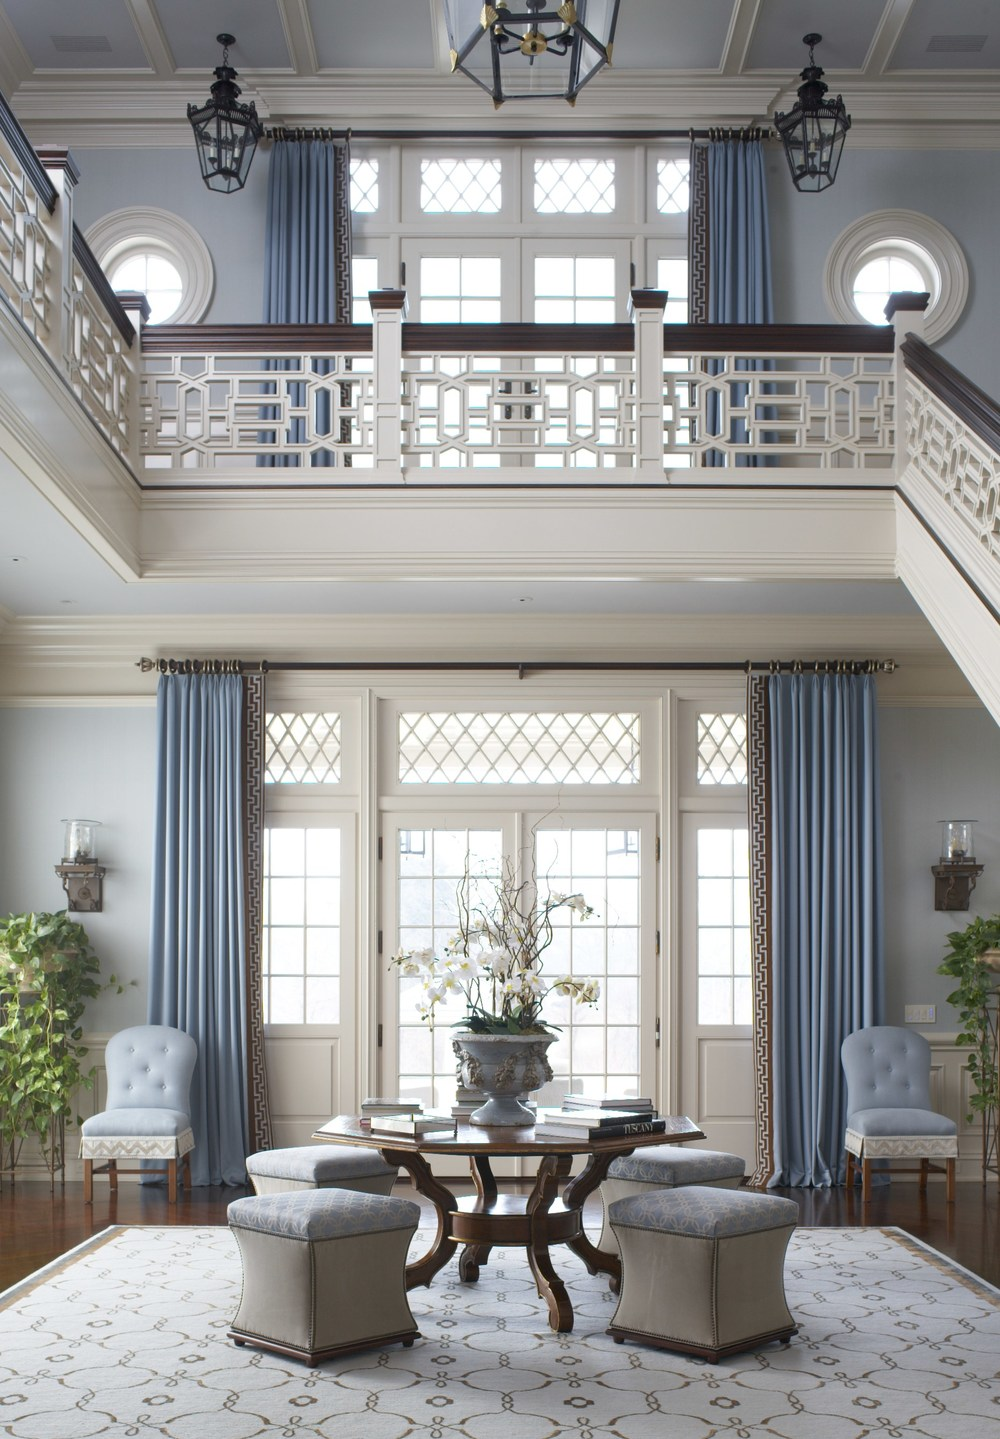 The entry with Chippendale entry railing was an inspiration point for Cindy Rinfret's design. Photo by Michael Partenio.